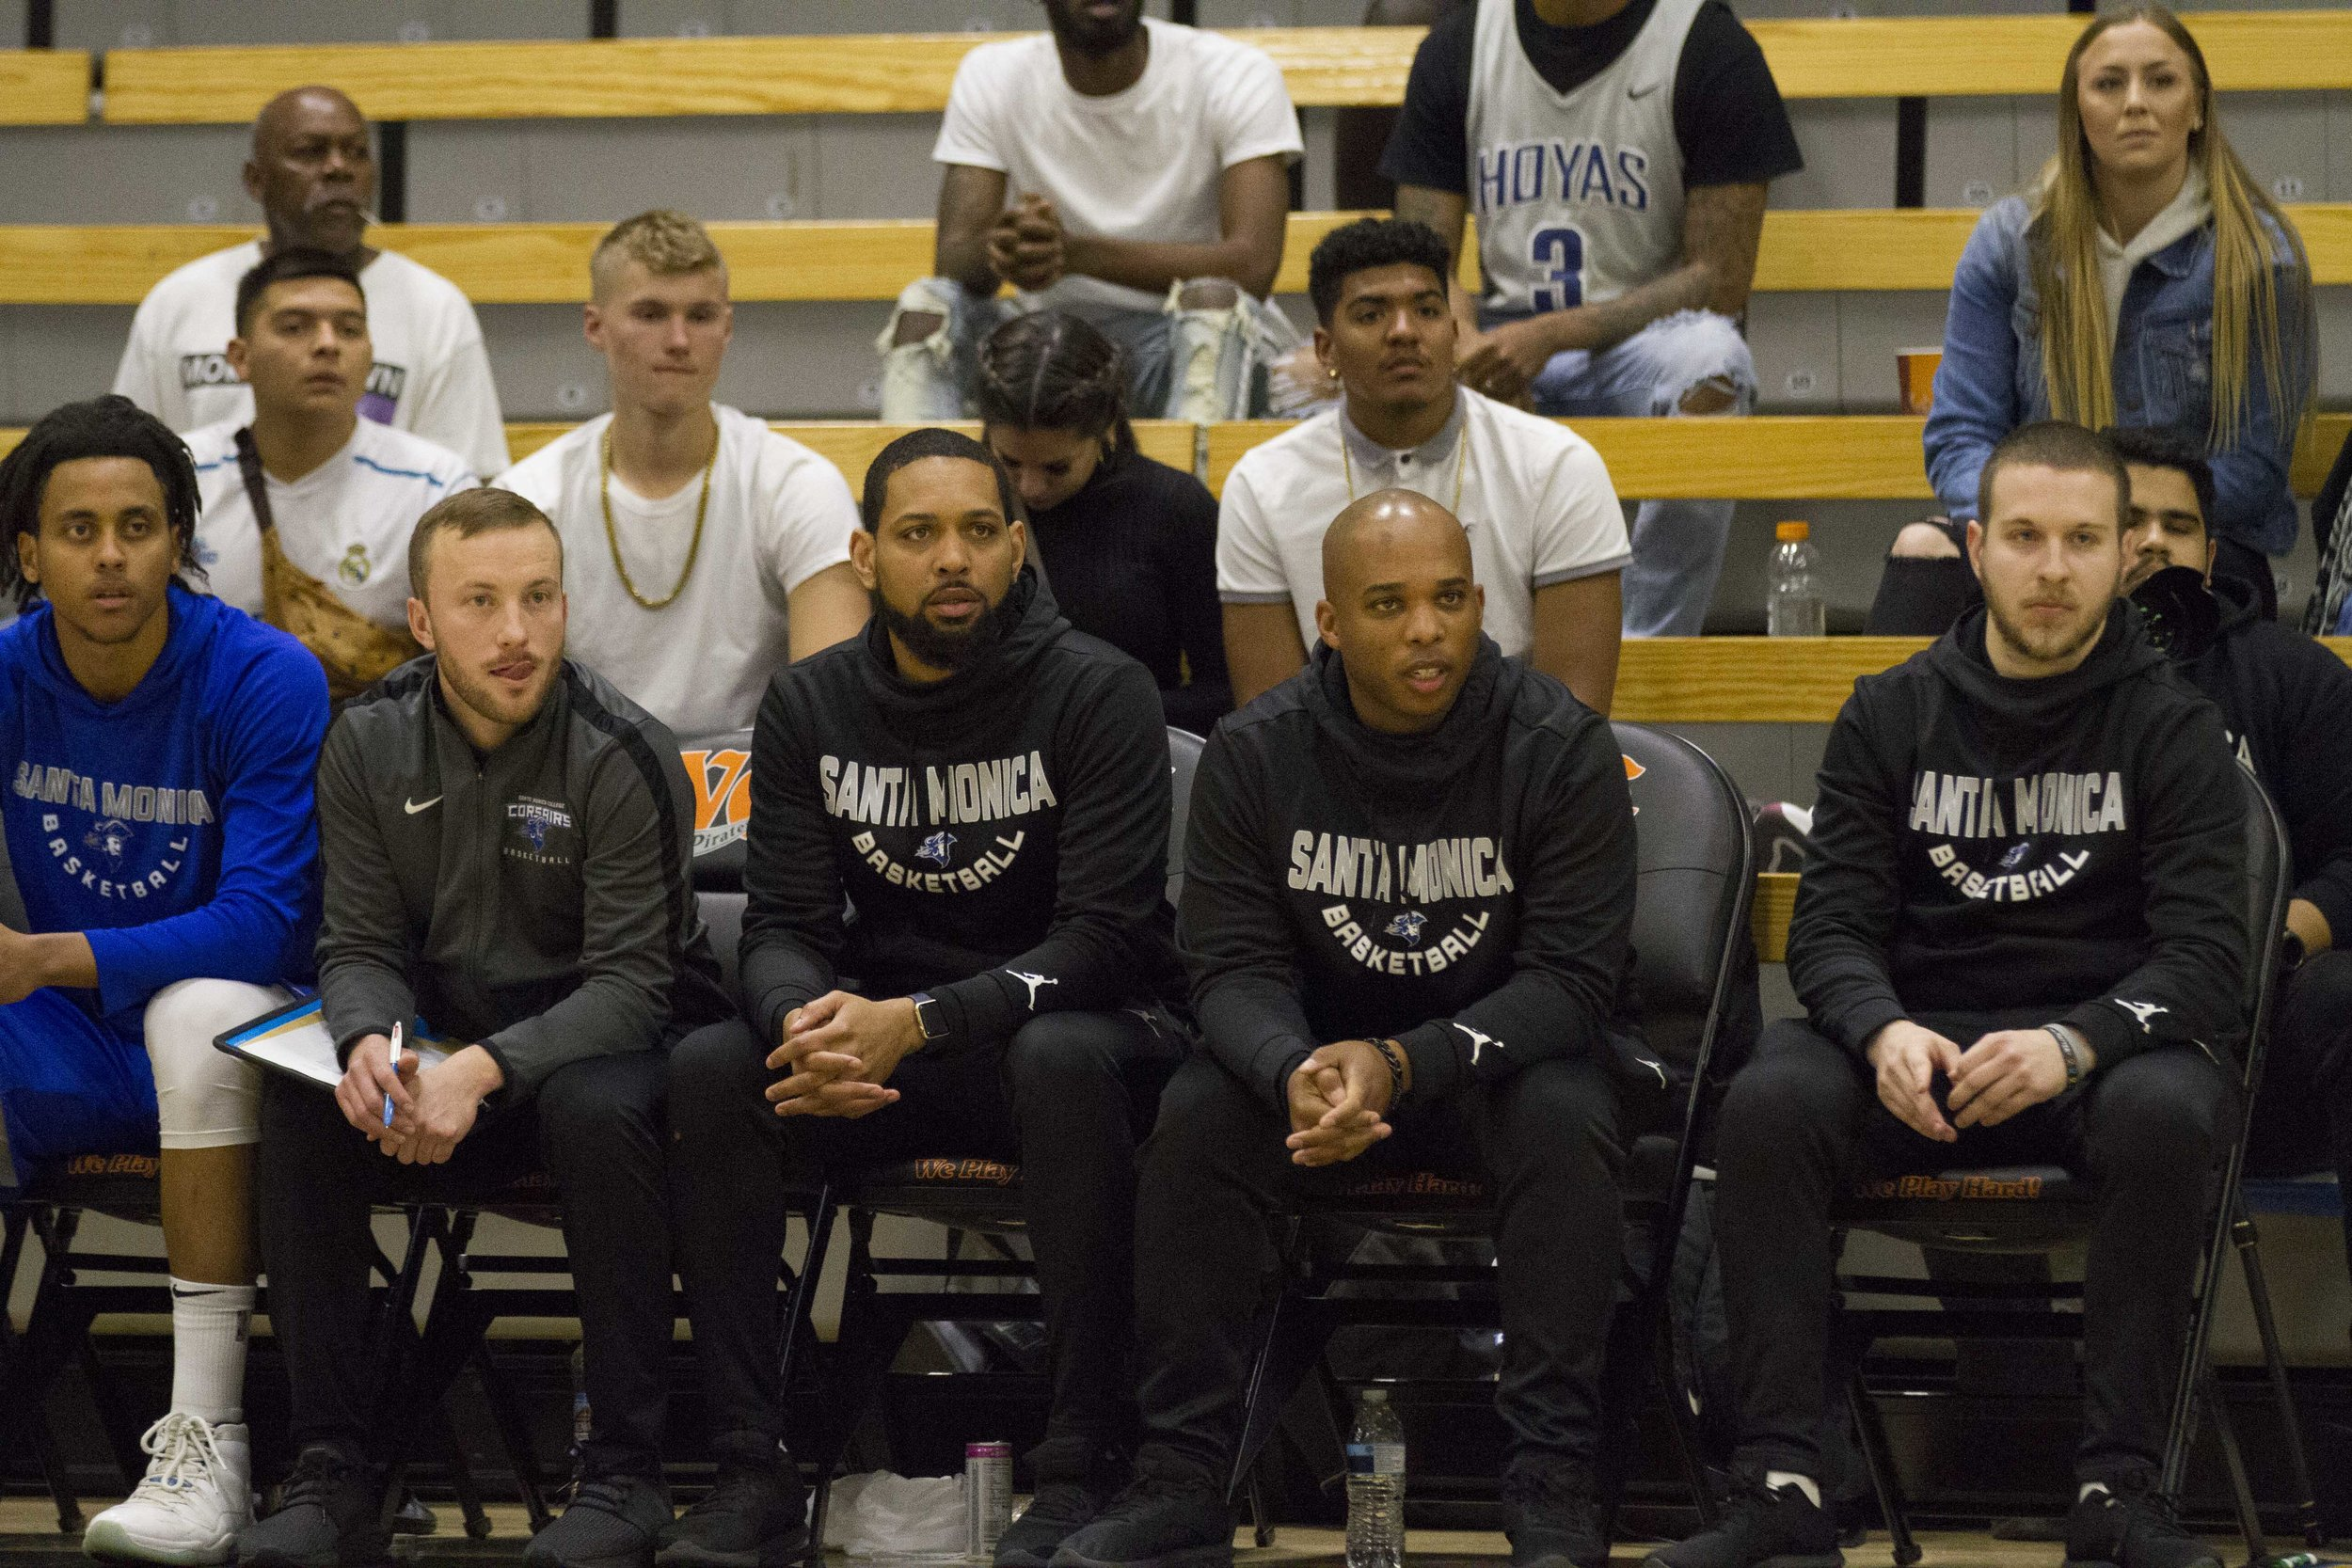 Lucas Zeemen (#11) and the Santa Monica College Corsairs coaches Ben Doran, Devon Richardson, Joshua Thomas (Head coach) and Justin Maidenberg at the CCCAA Men's Basketball Championship (quarterfinals) playing the City College of San Francisco Rams at Ventura College on Thursday March 14, 2019. Final Score 67-63 for the Rams. Photo by Tanya Barcessat